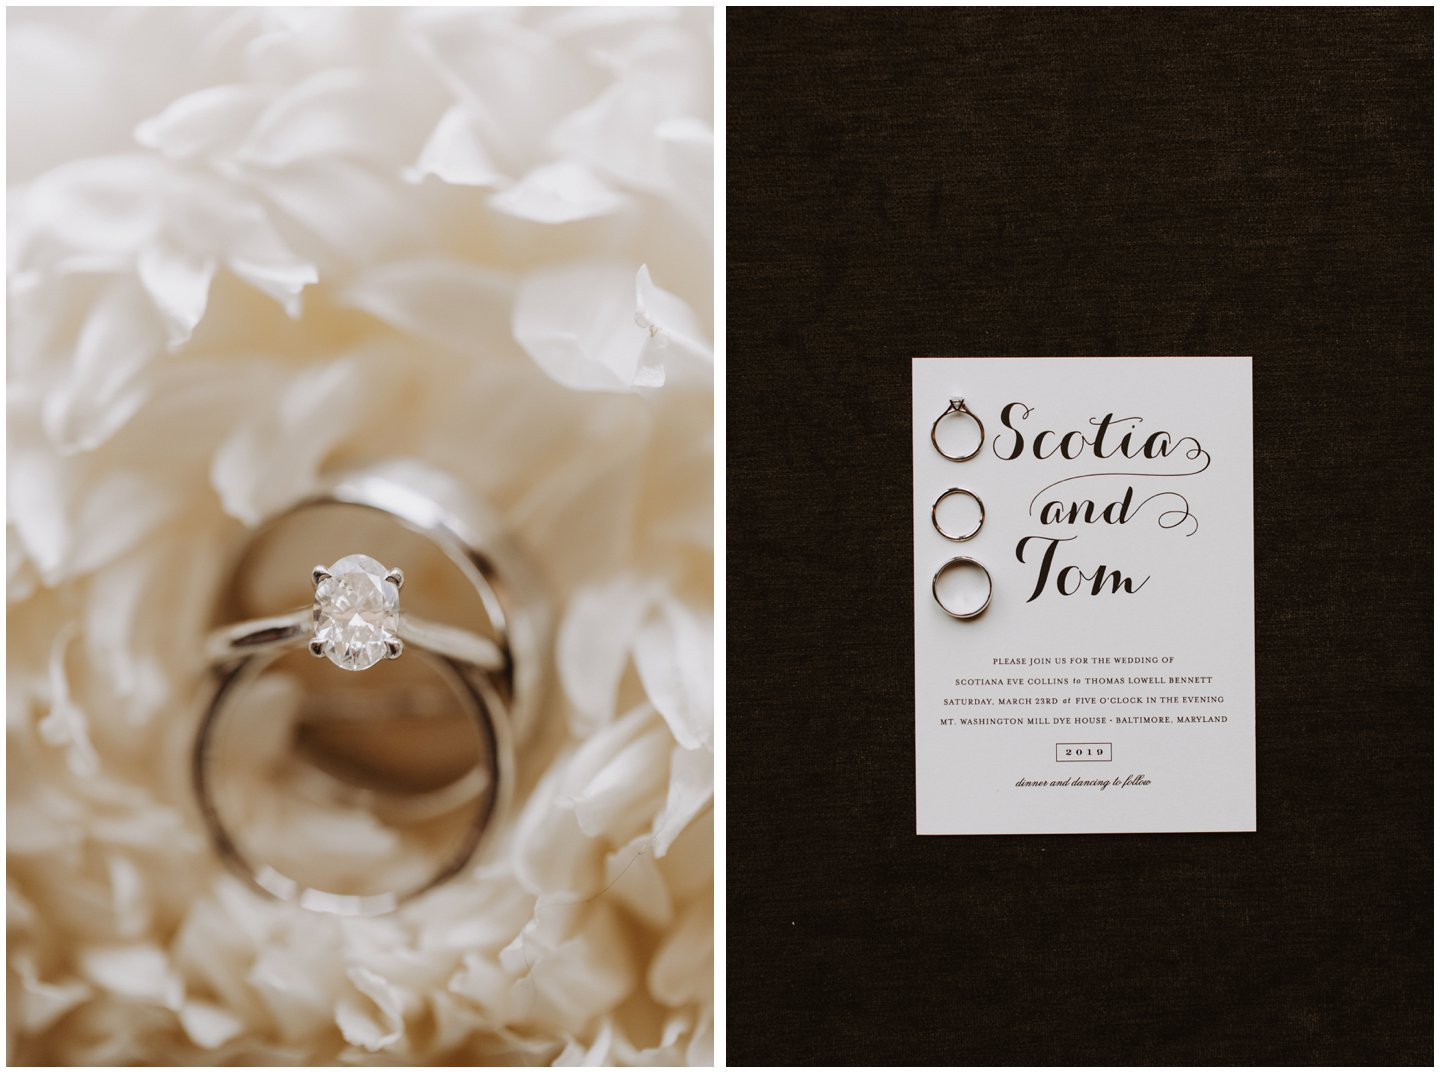 wedding rings in bouquet and wedding invitations